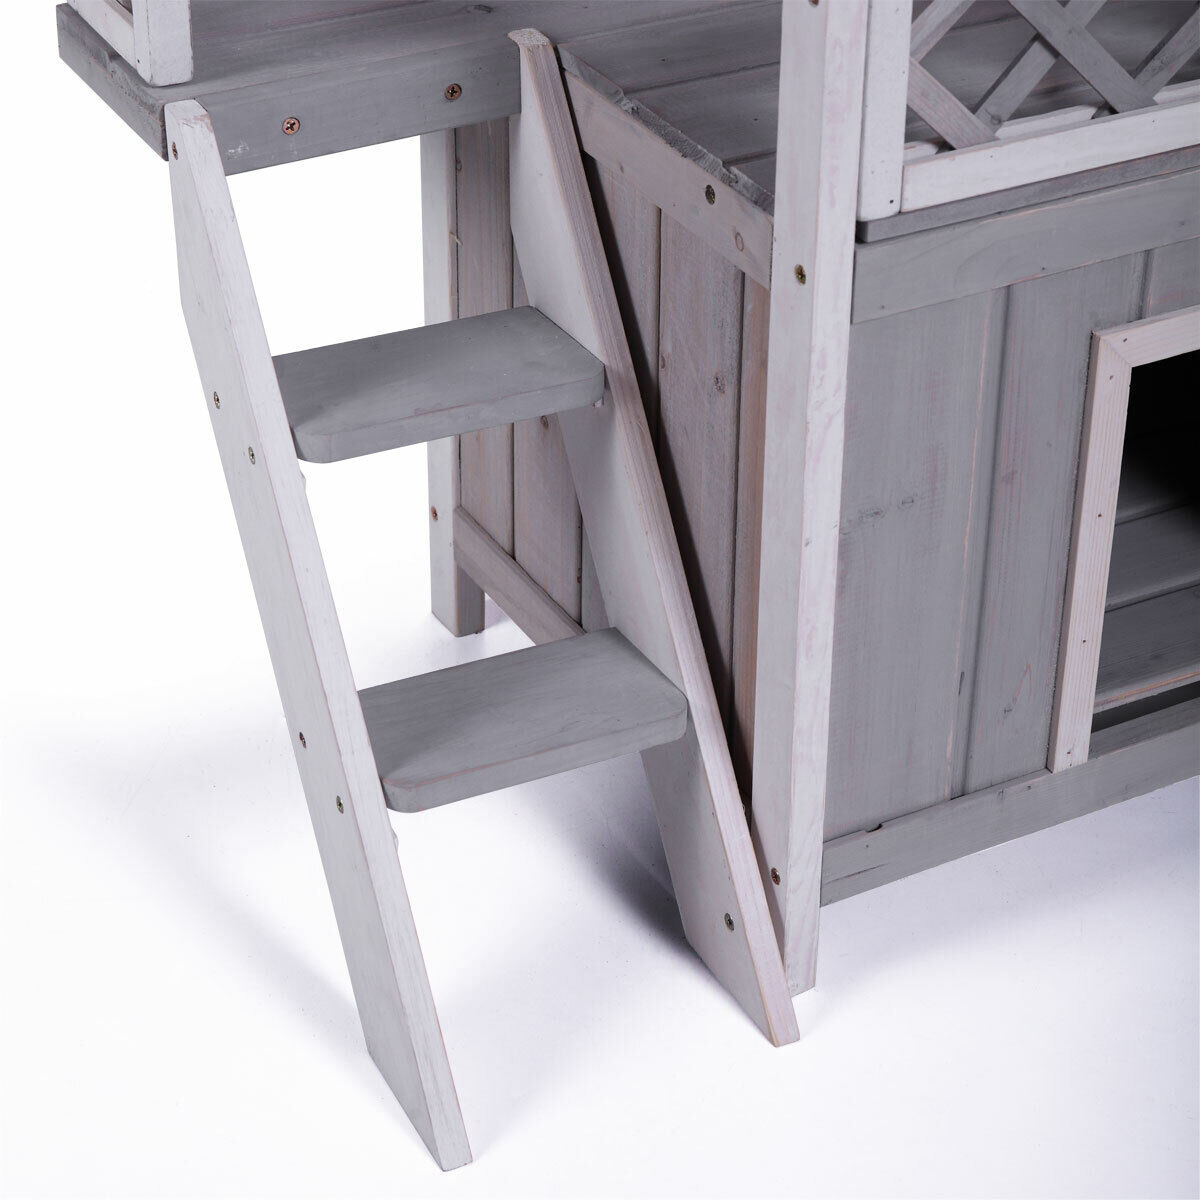 Dog House Outdoor Shelter Roof Cat Condo Wood Steps Balcony Puppy Stairs Grey - $45.57